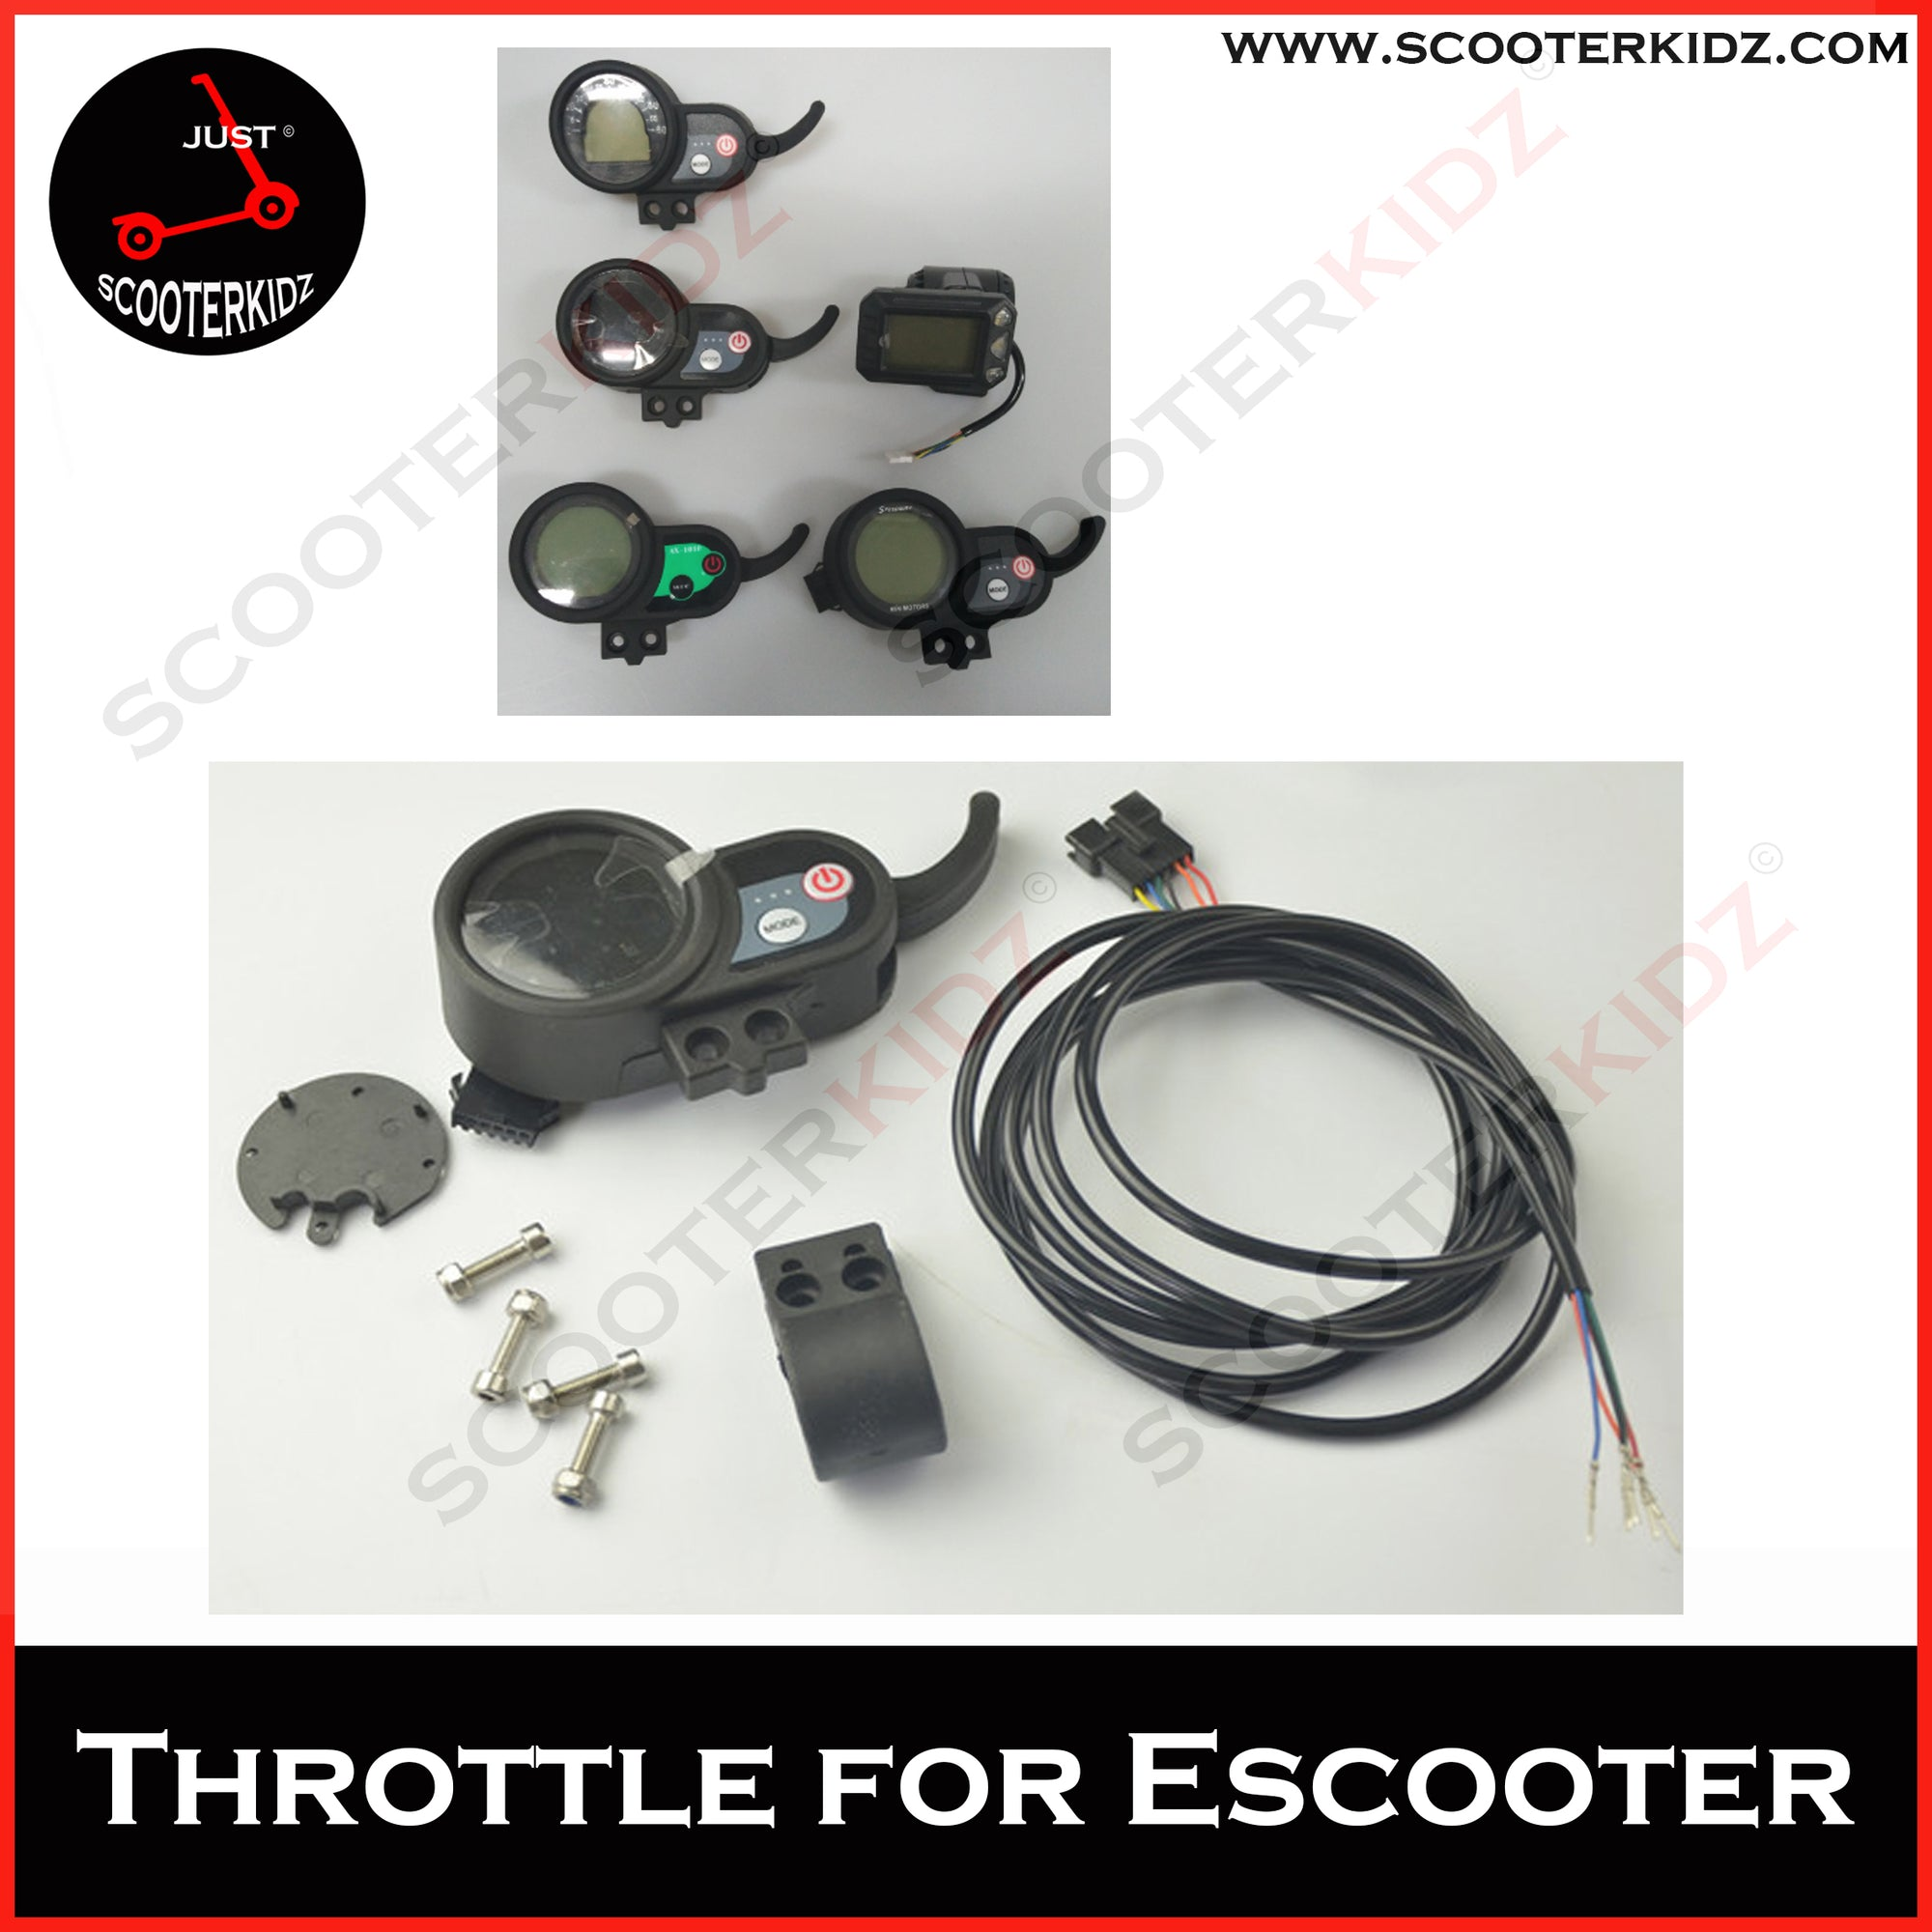 Throttle for All Electric Scooter